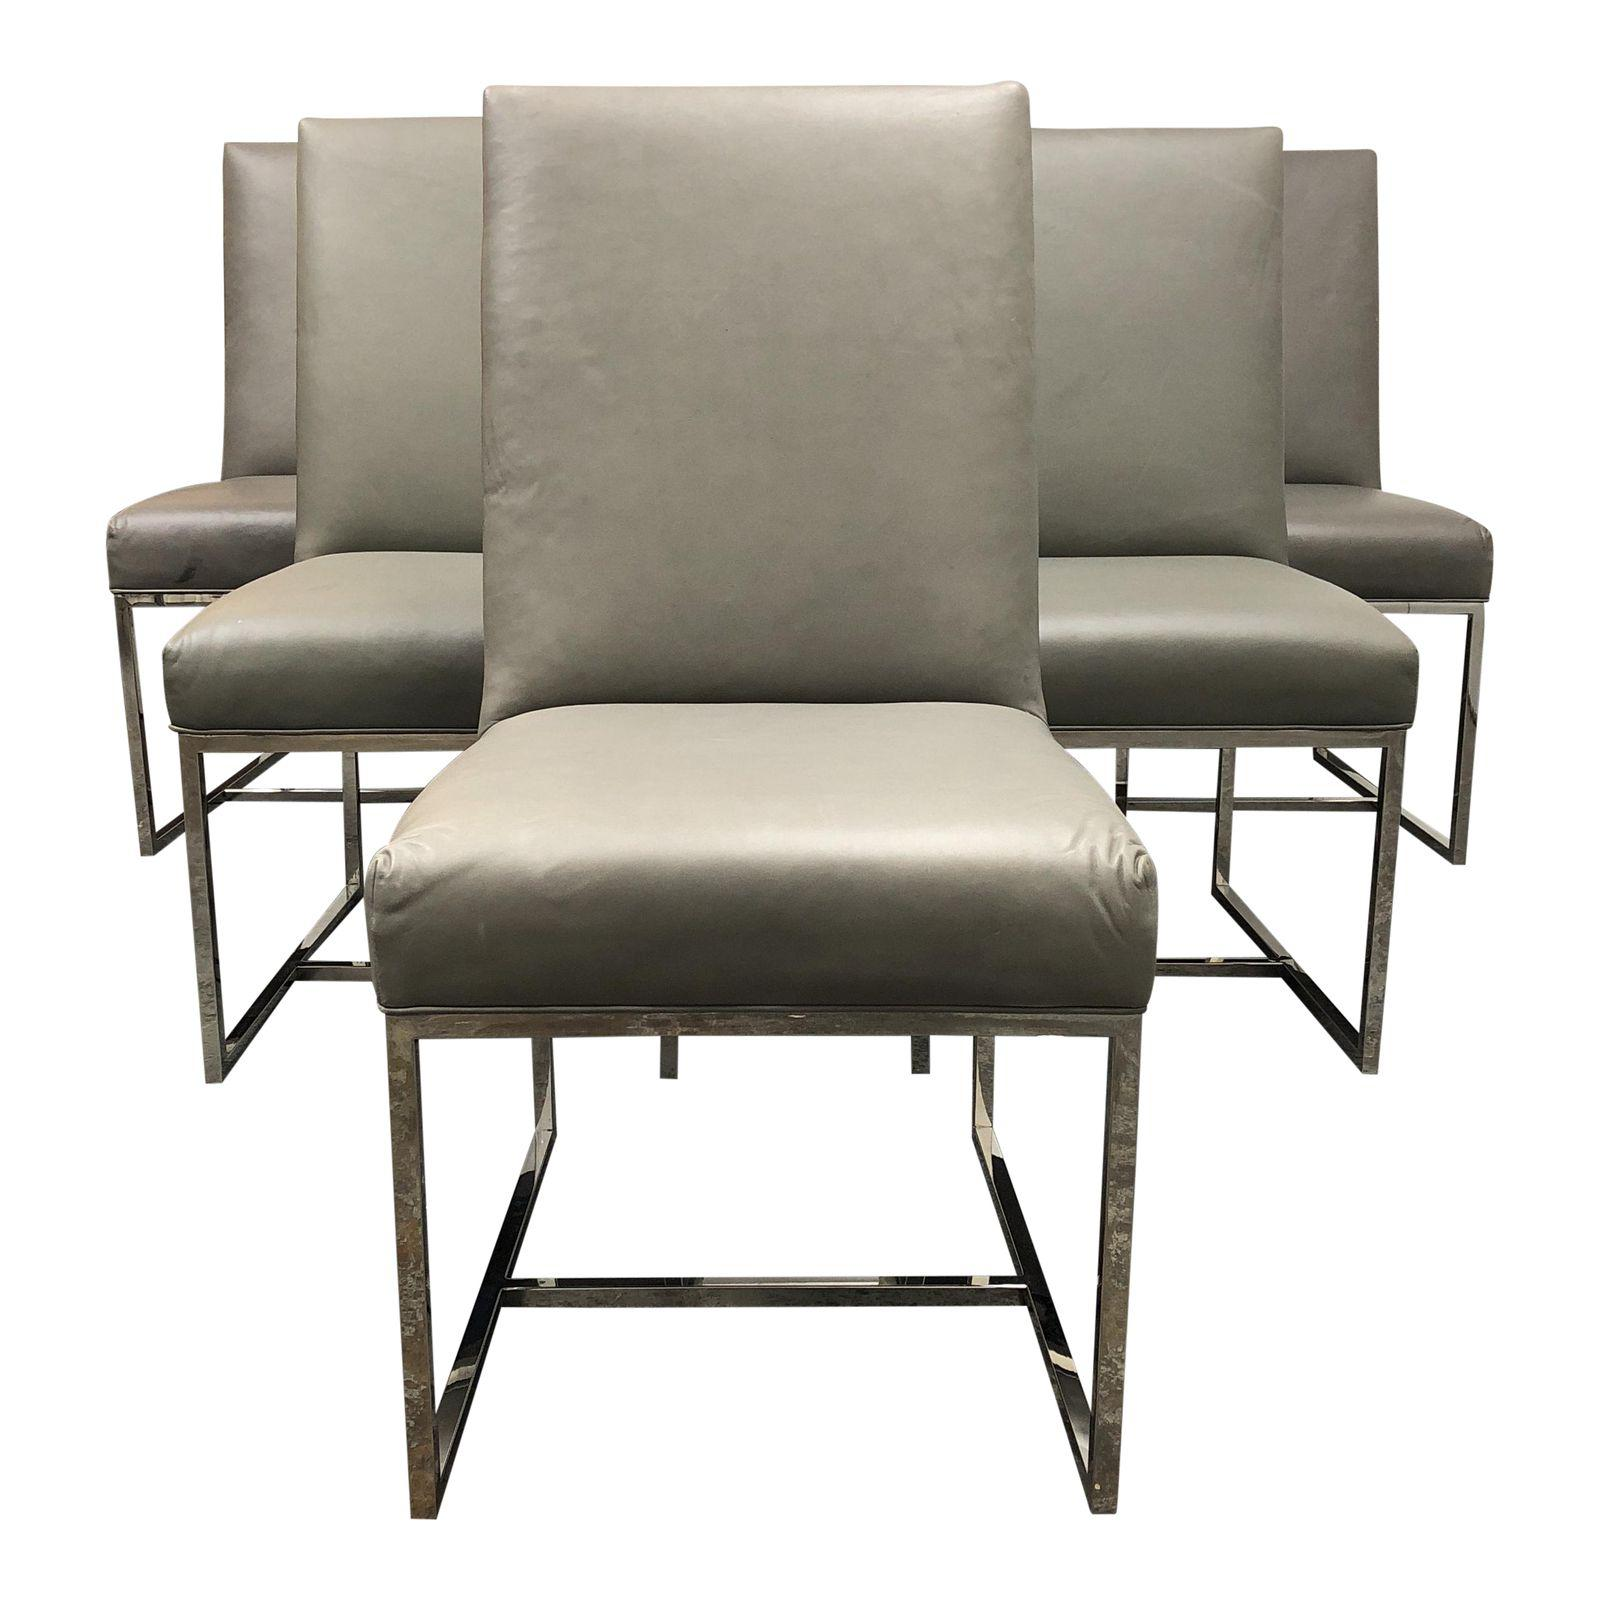 Restoration Hardware Grant Leather Chairs Set Of 6